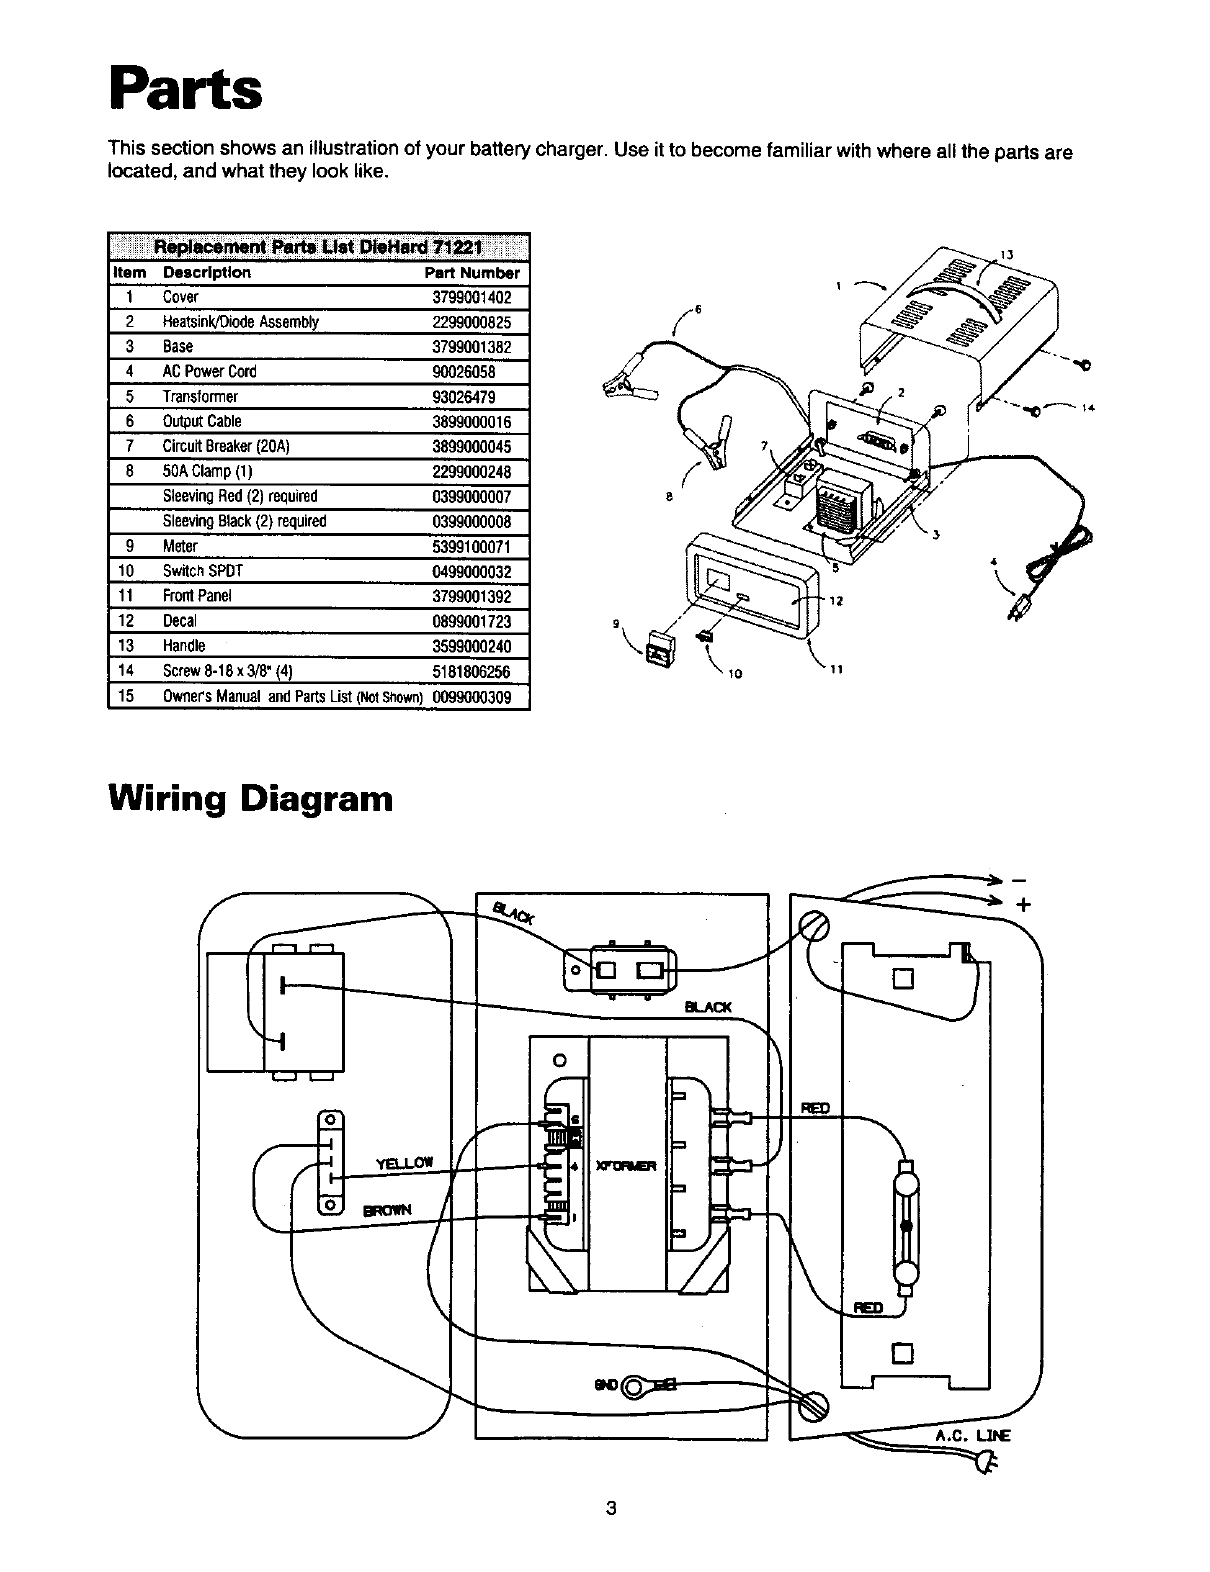 Hard Battery Charger Wiring Diagram